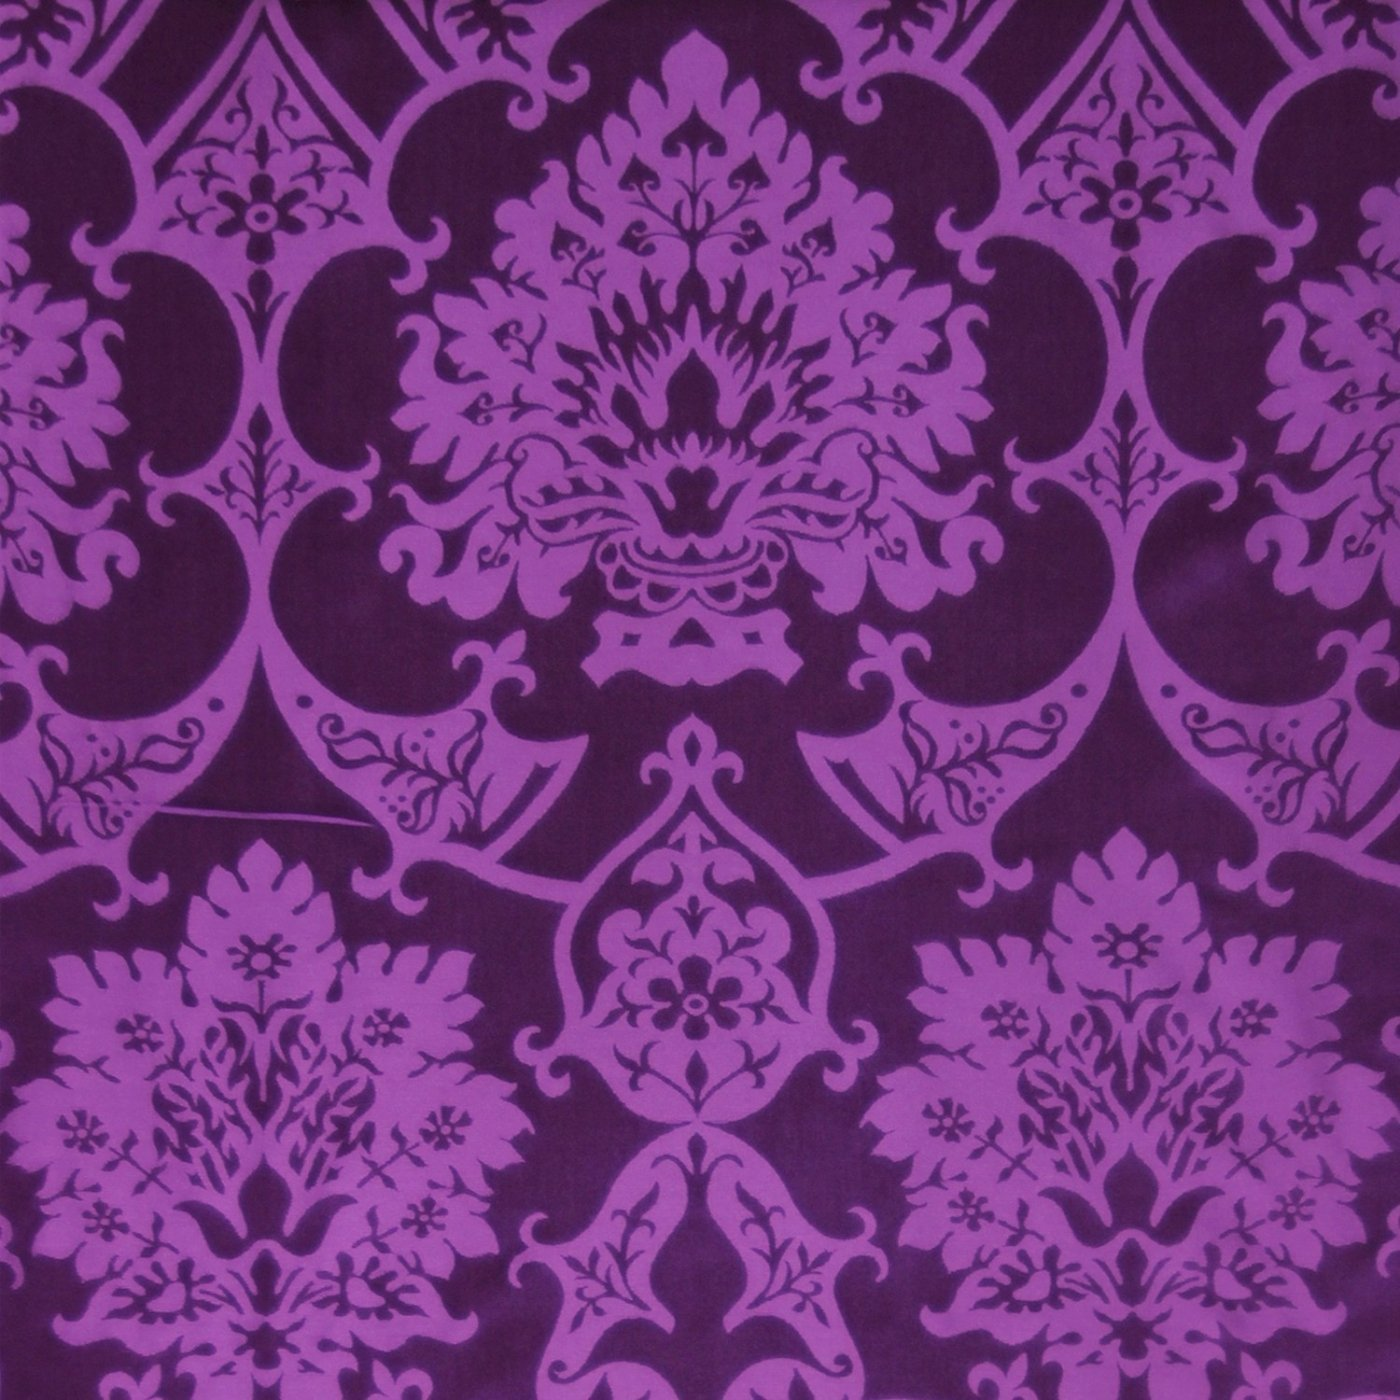 Minster Cope in Royal Purple Gothic with Royal Purple/Gold Gothic Orphreys - Watts & Co. (international)